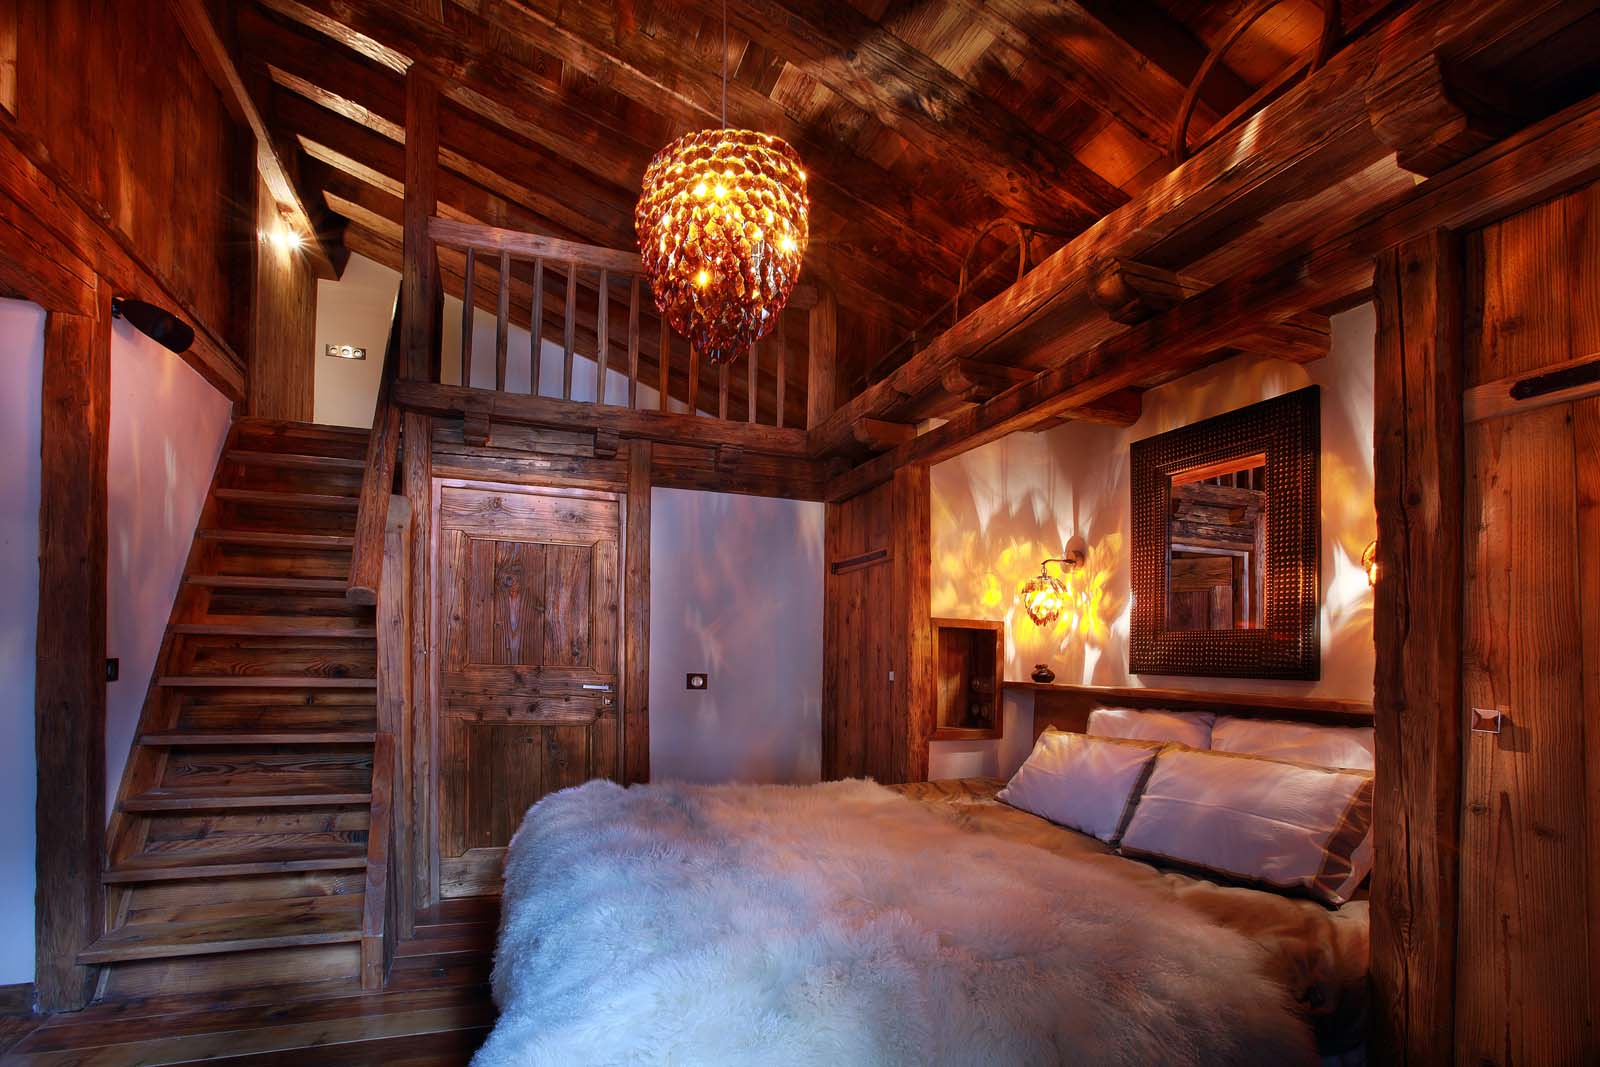 Chalet marco polo in val d 39 isere by skiboutique for Salotti bellissimi